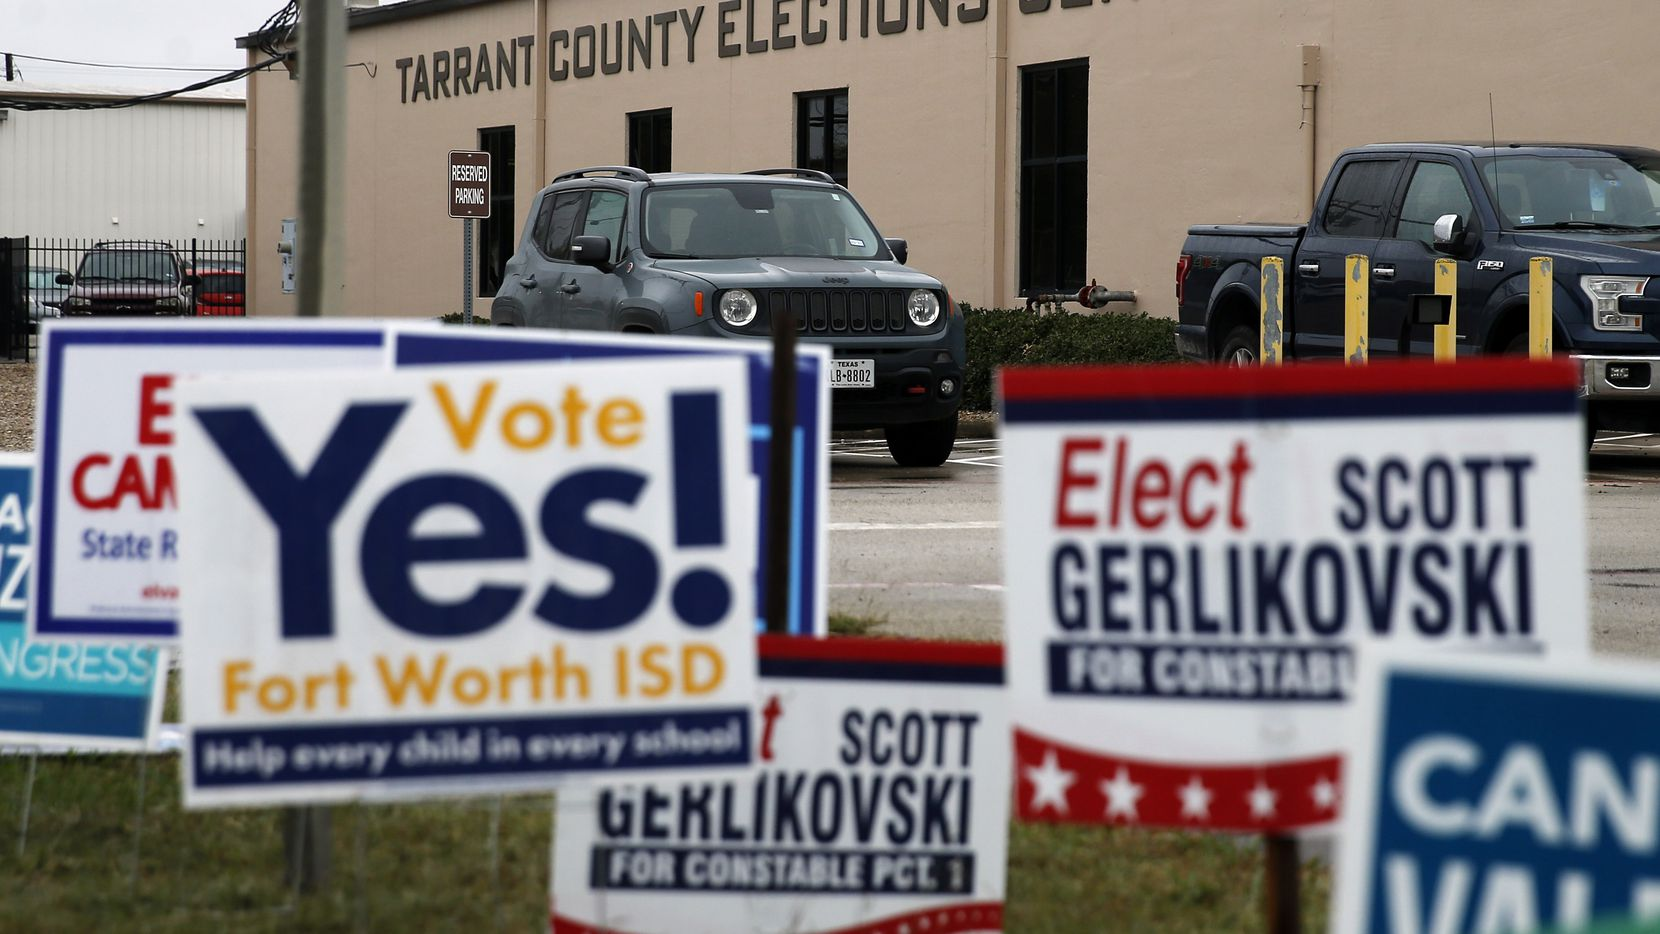 Campaign signs line the street outside the Tarrant County Elections Center in Fort Worth, Tuesday, October 27, 2020.